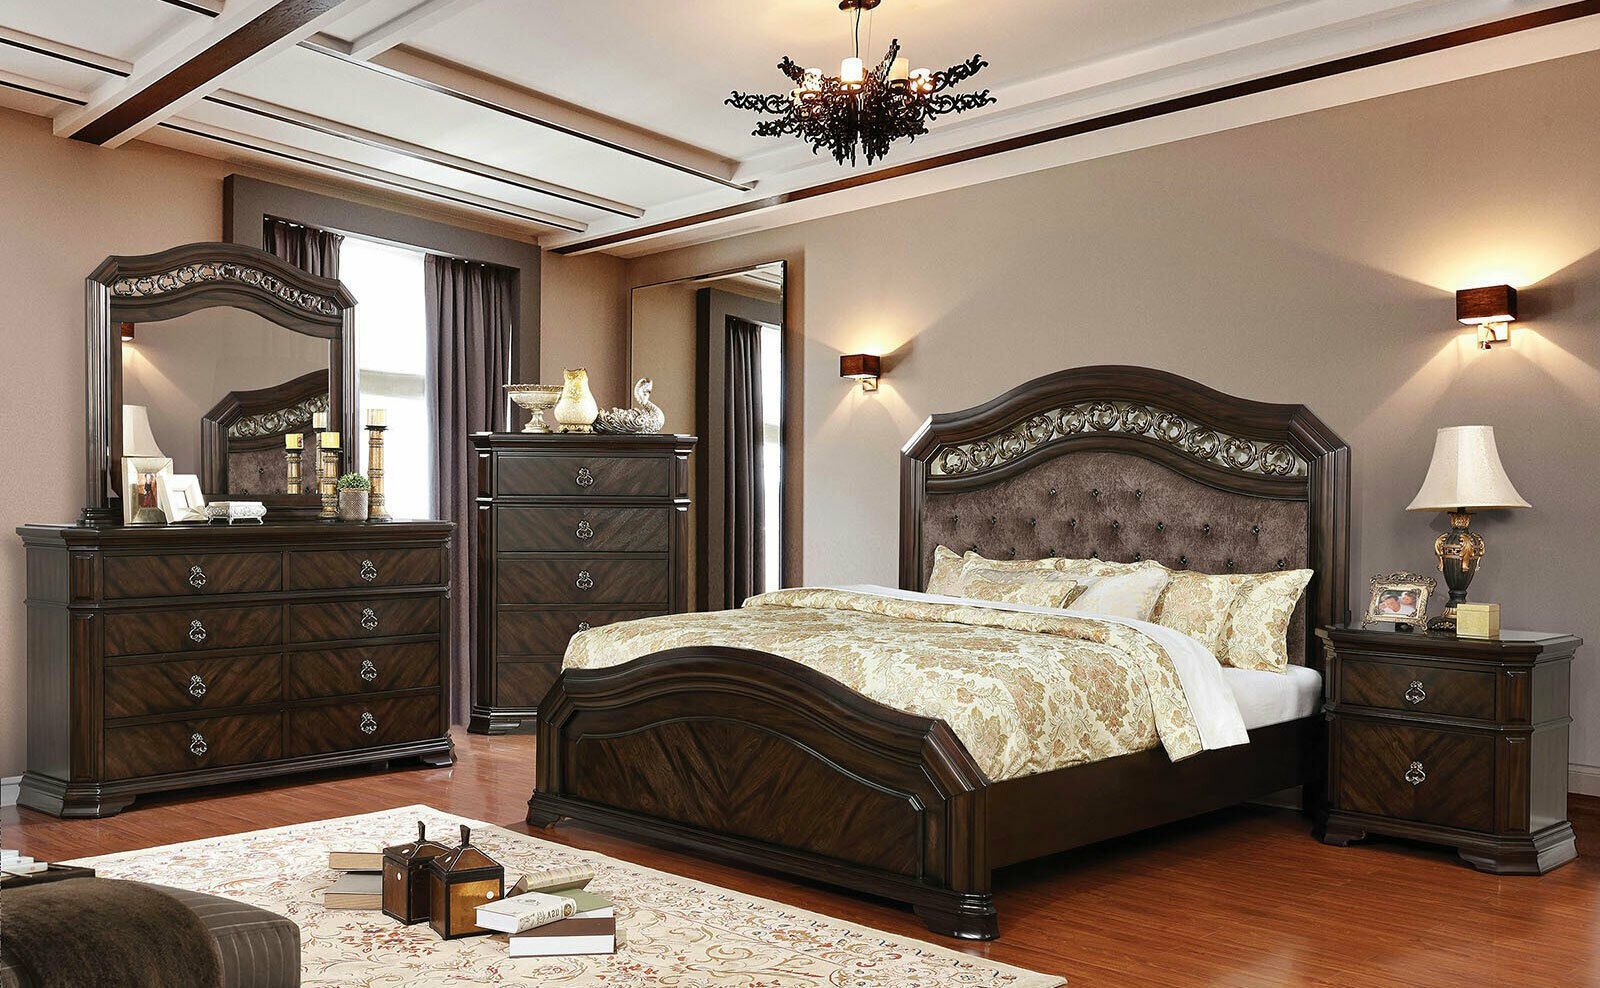 New traditional espresso brown bedroom furniture olympia - Espresso brown bedroom furniture ...